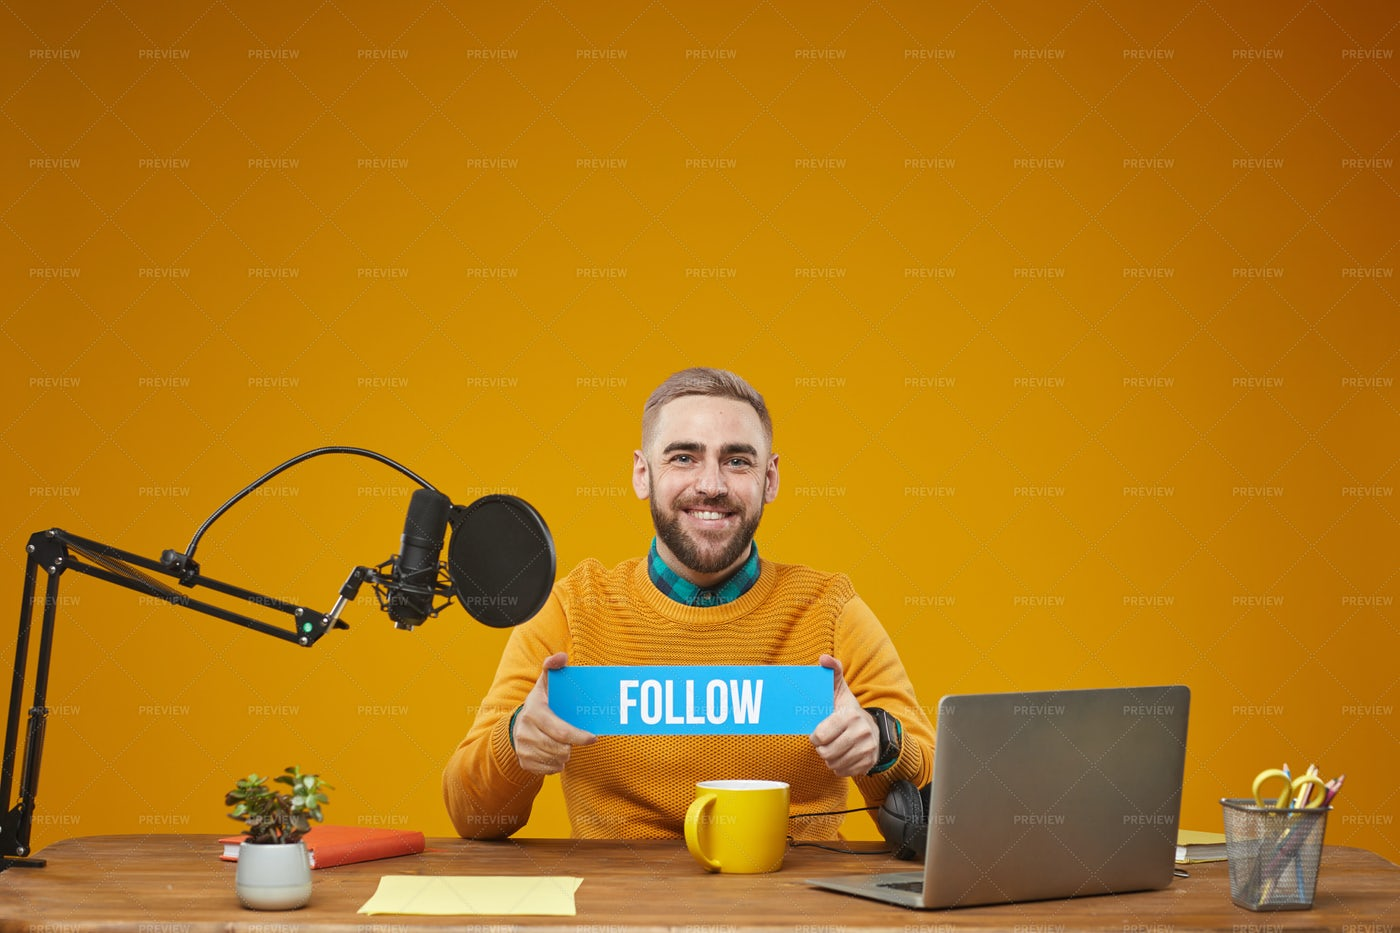 Vlogger Holding Follow Sign Plate: Stock Photos